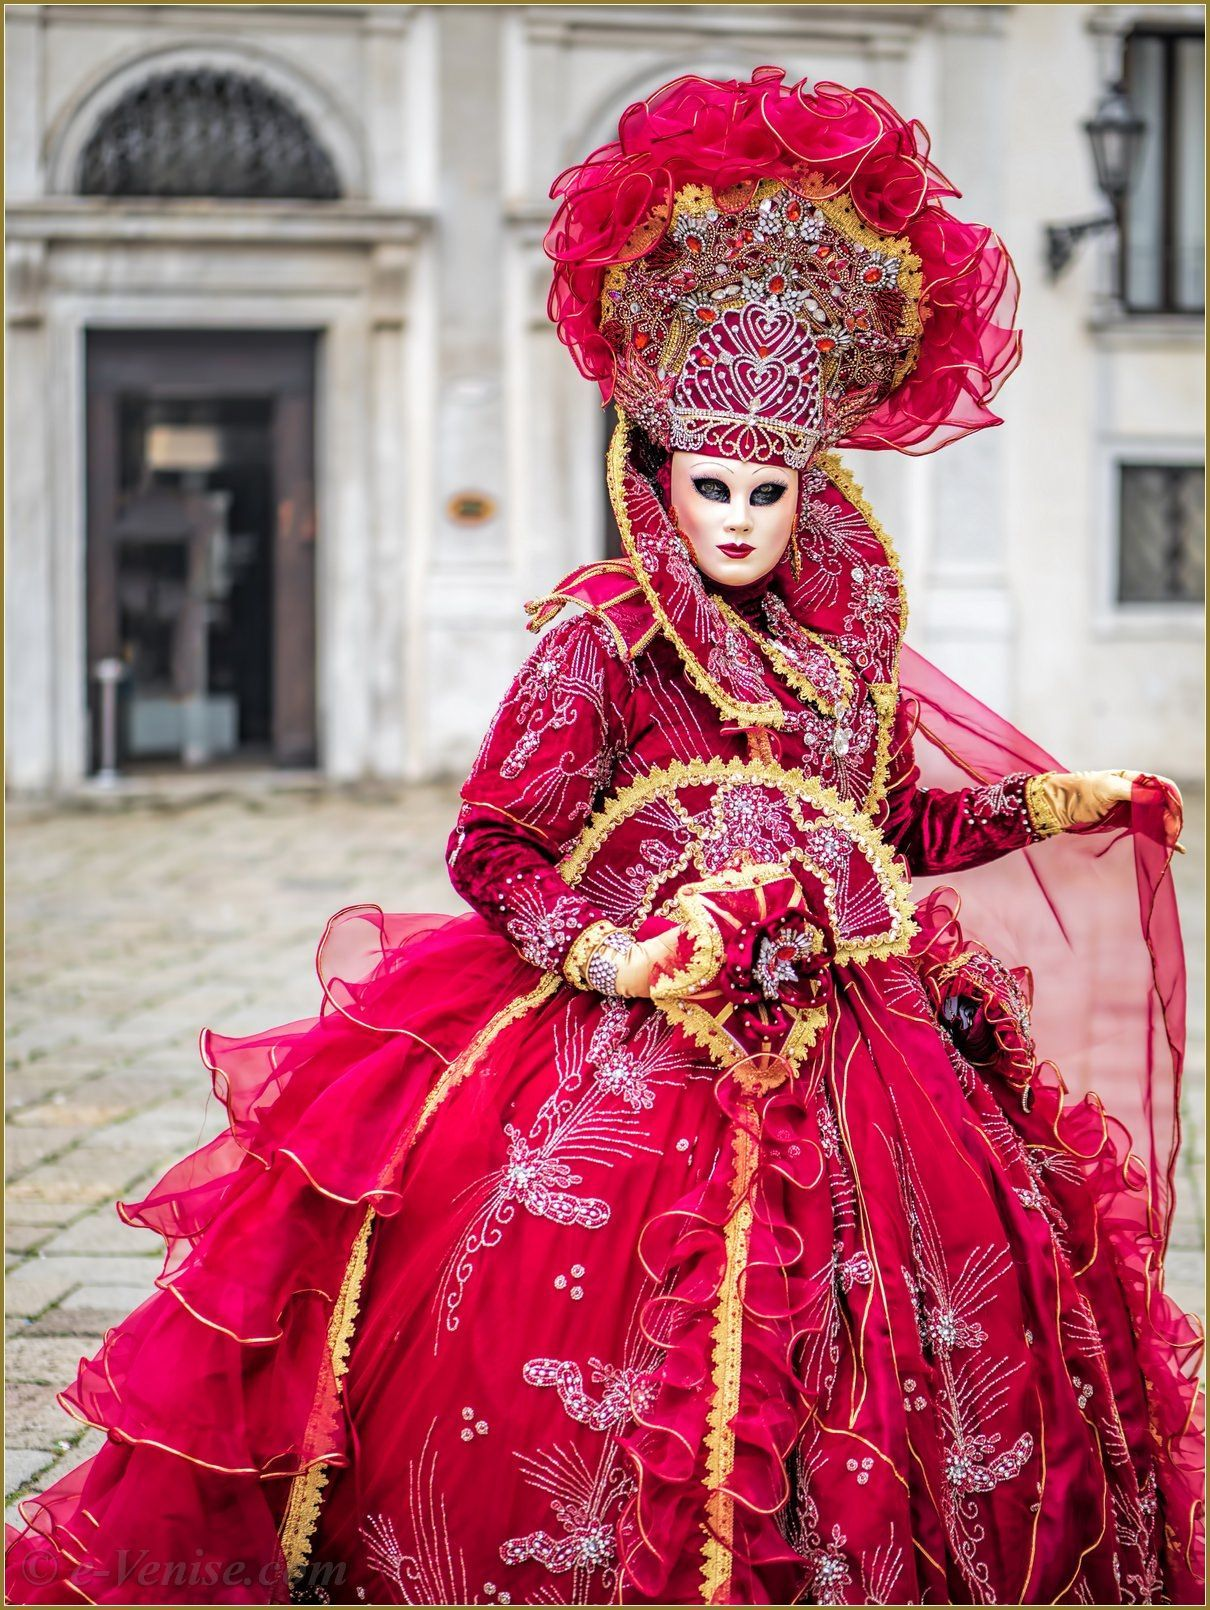 Photos Masques Costumes Carnaval Venise 2016 | page 4 | Venise rouge ...